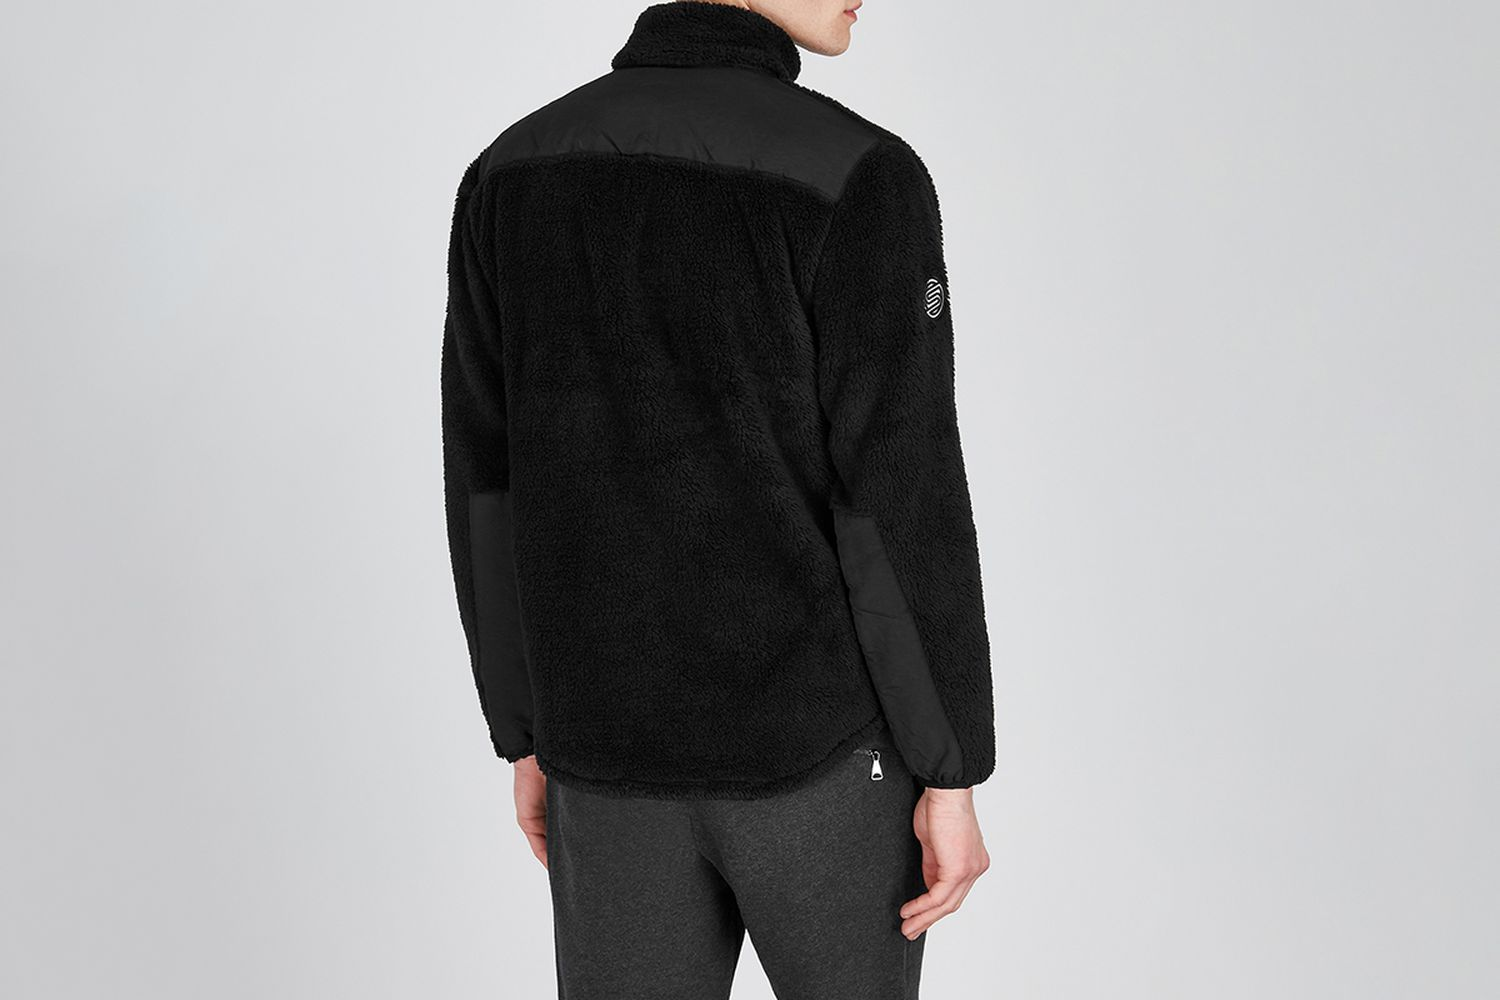 Panelled Fleece Sweatshirt